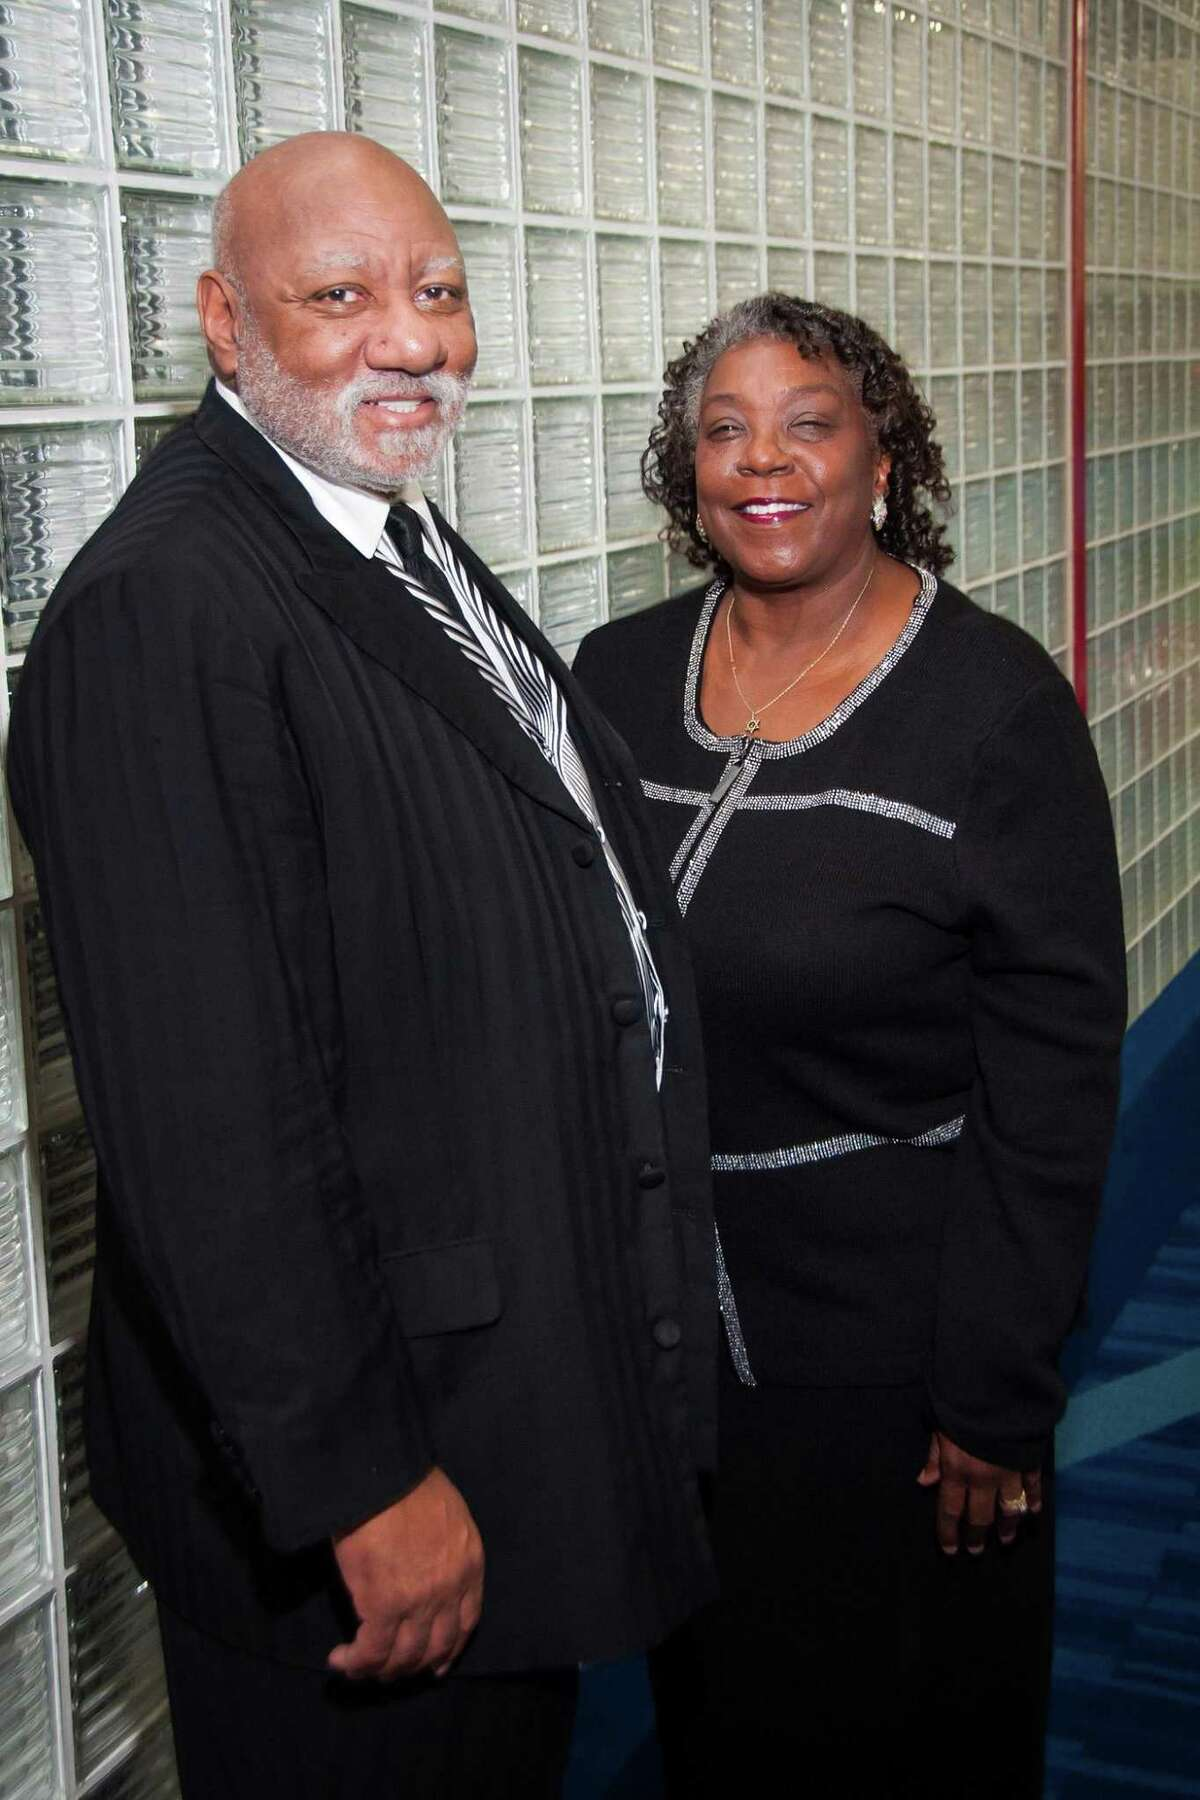 Rev. Manson Johnson and Zelda Johnson second annual Visionary Pastor's Awards ceremony at the George R. Brown Convention Center.